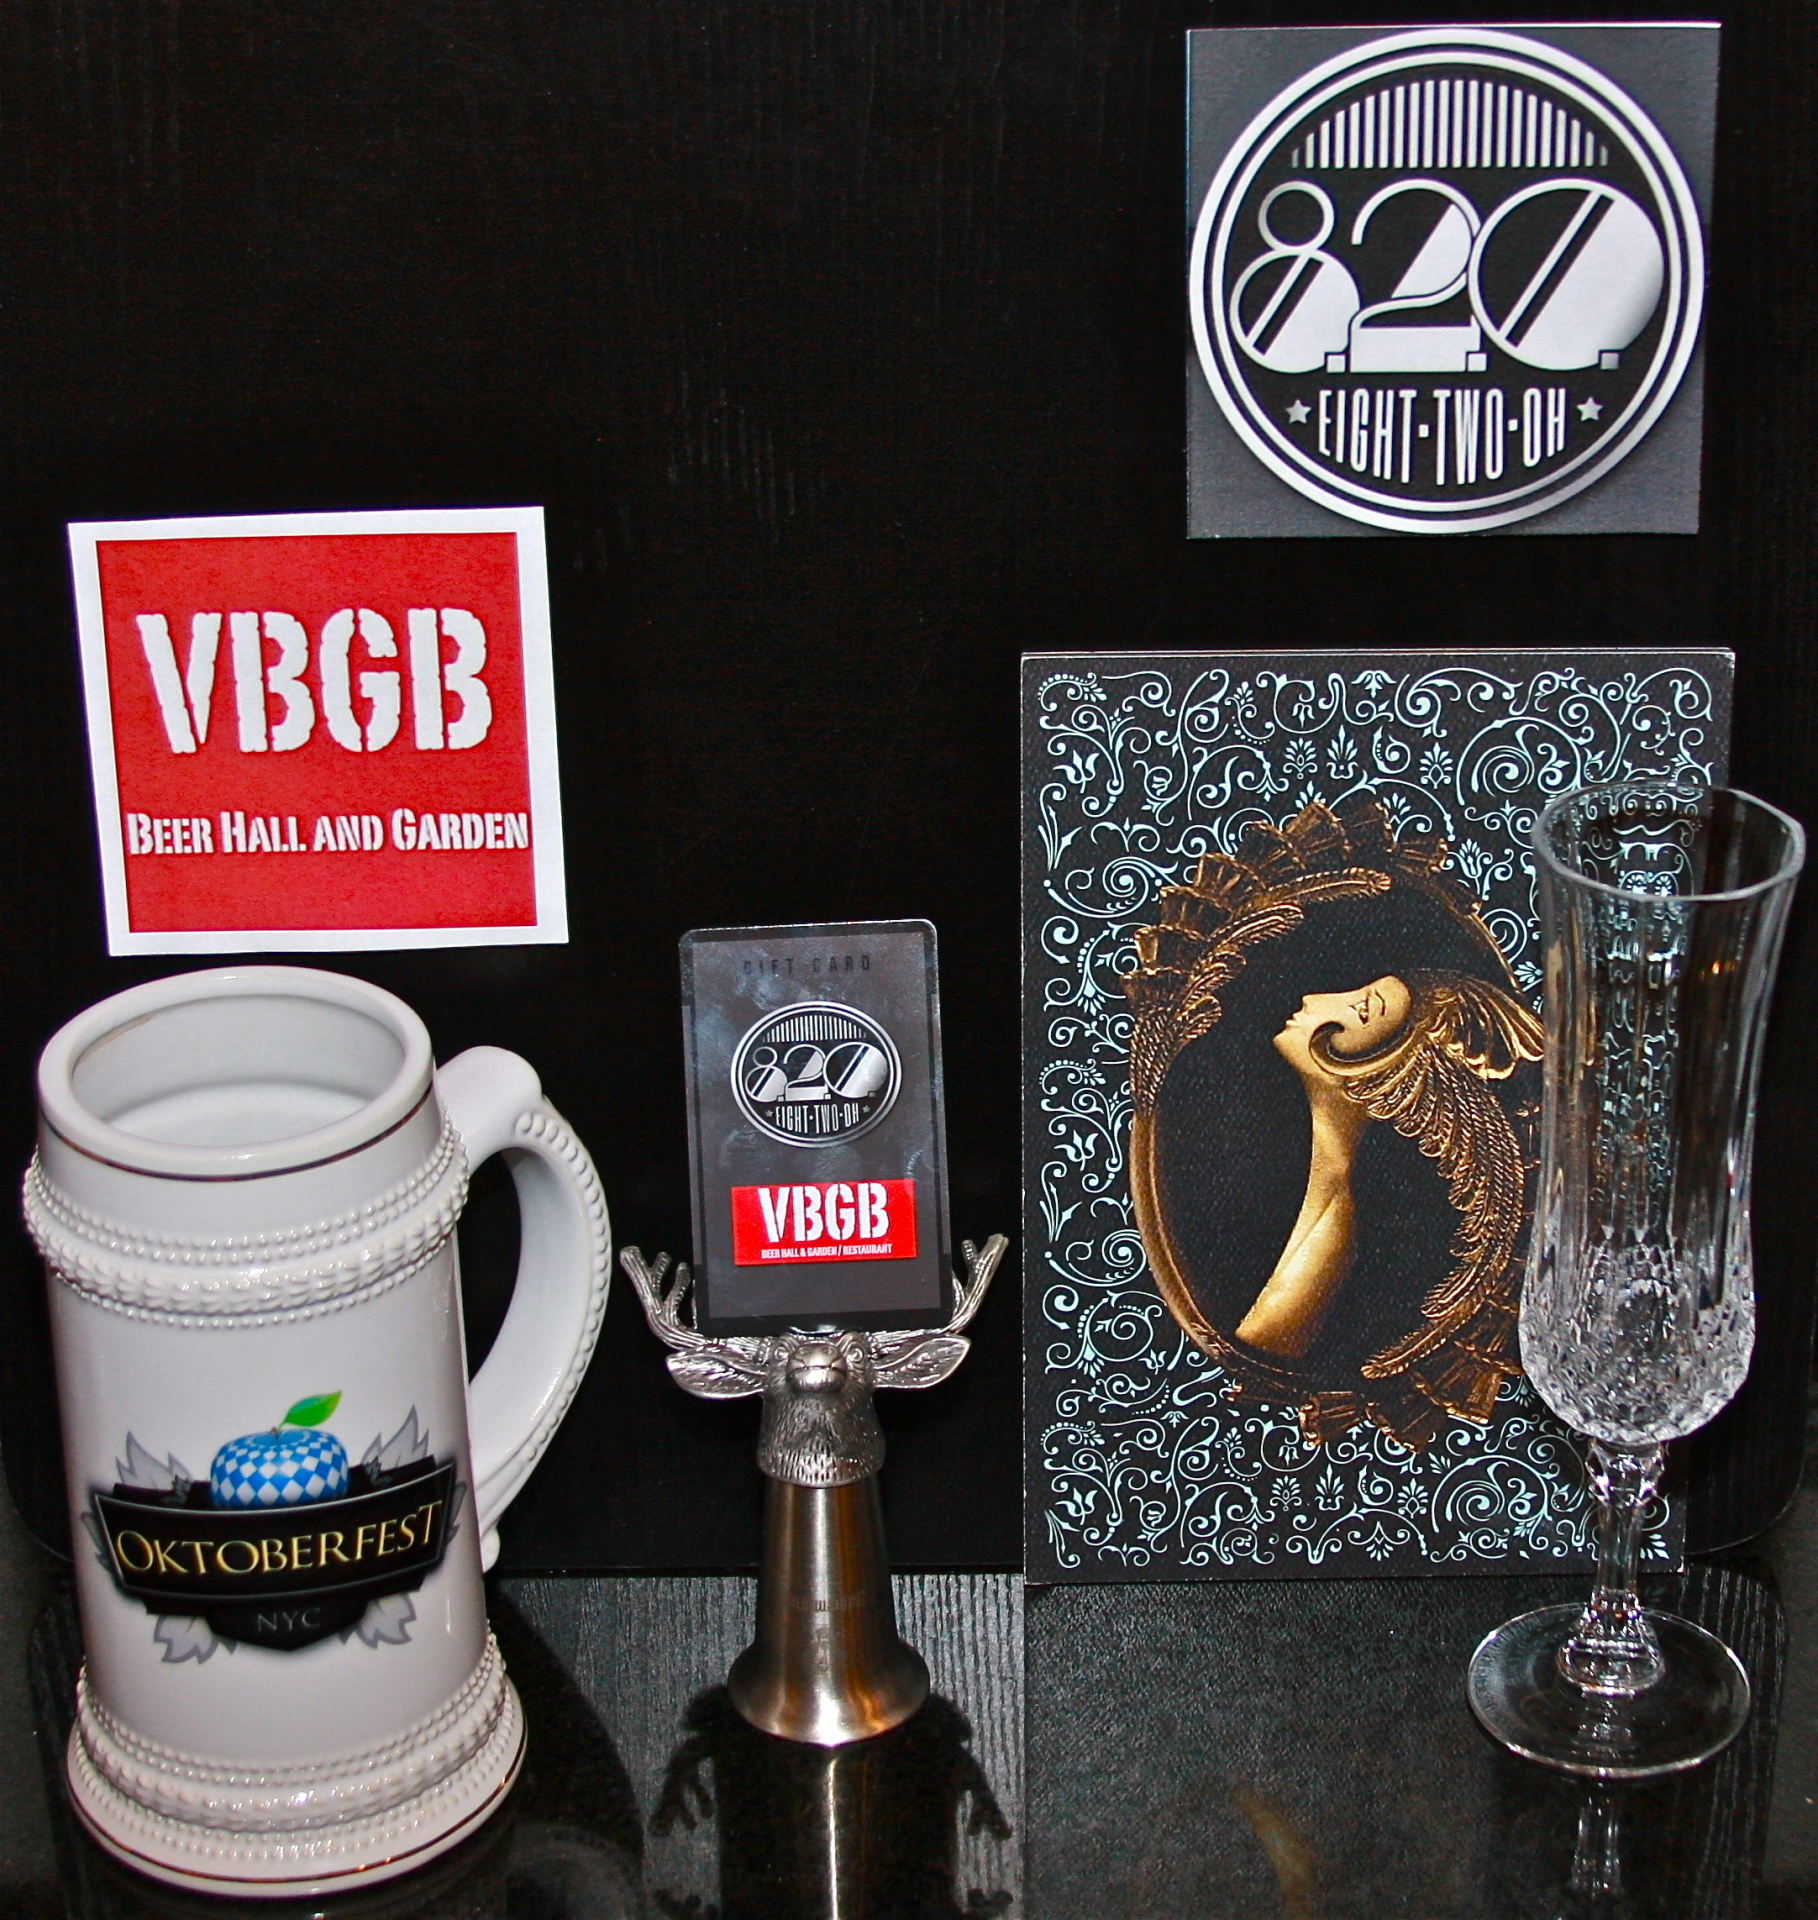 VBGB, 8.2.0, charlotte, moving to charlotte, victoria schweizer, southern luxurie